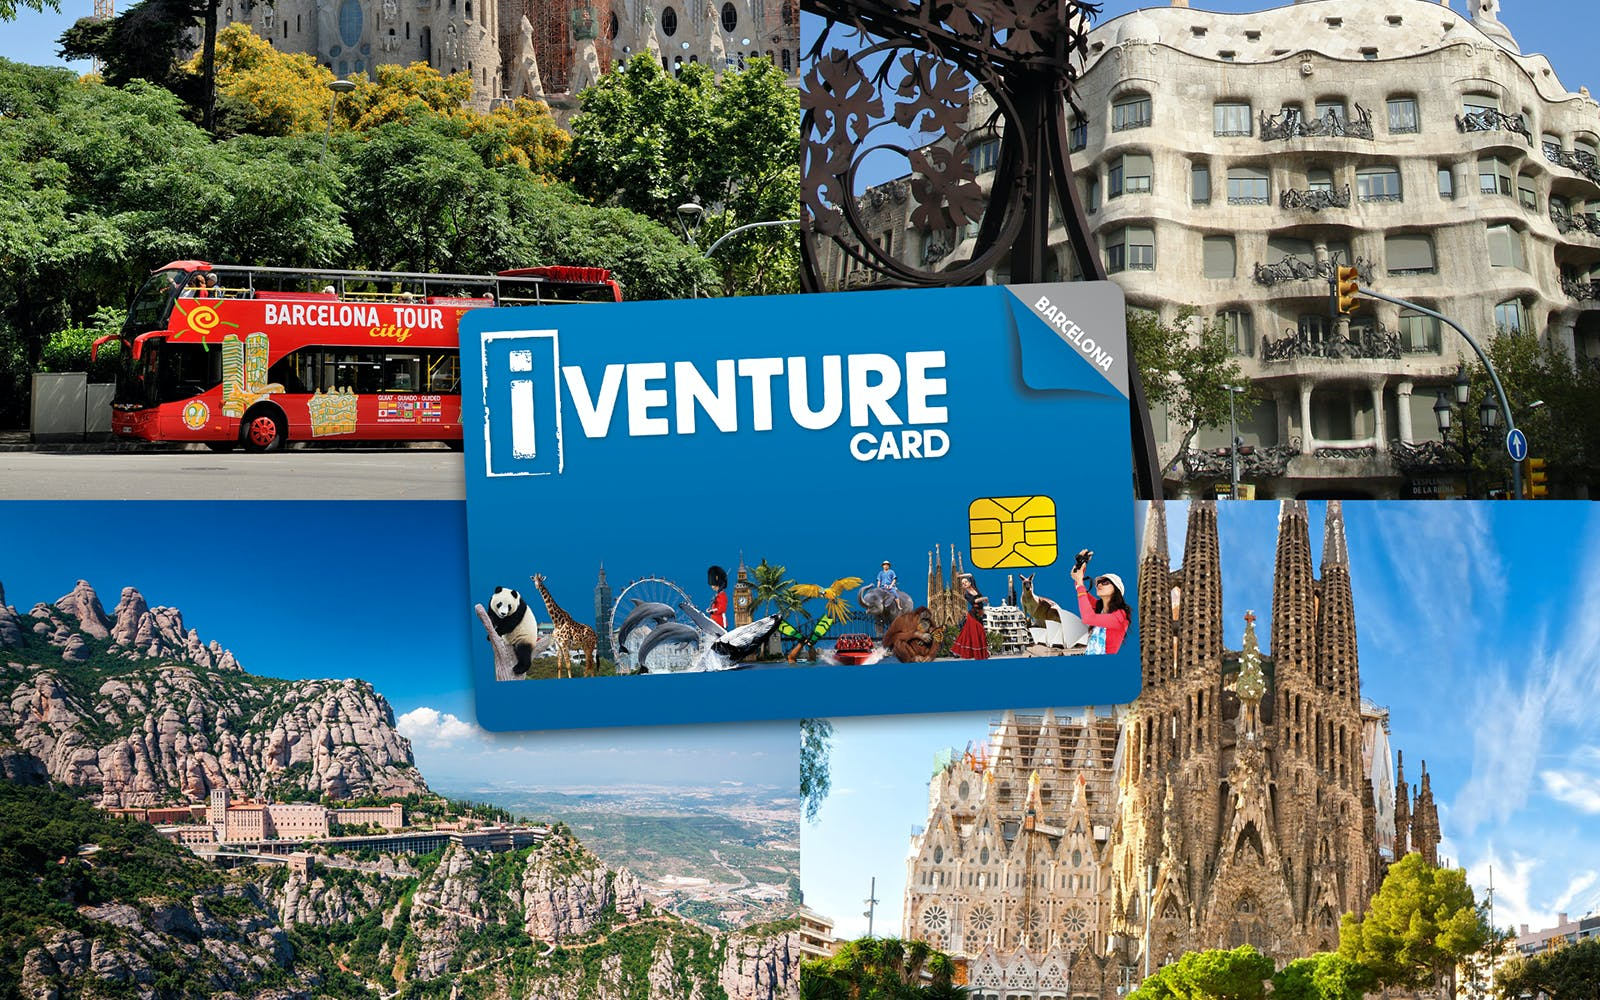 Barcelona iVenture Multi Attraction Pass